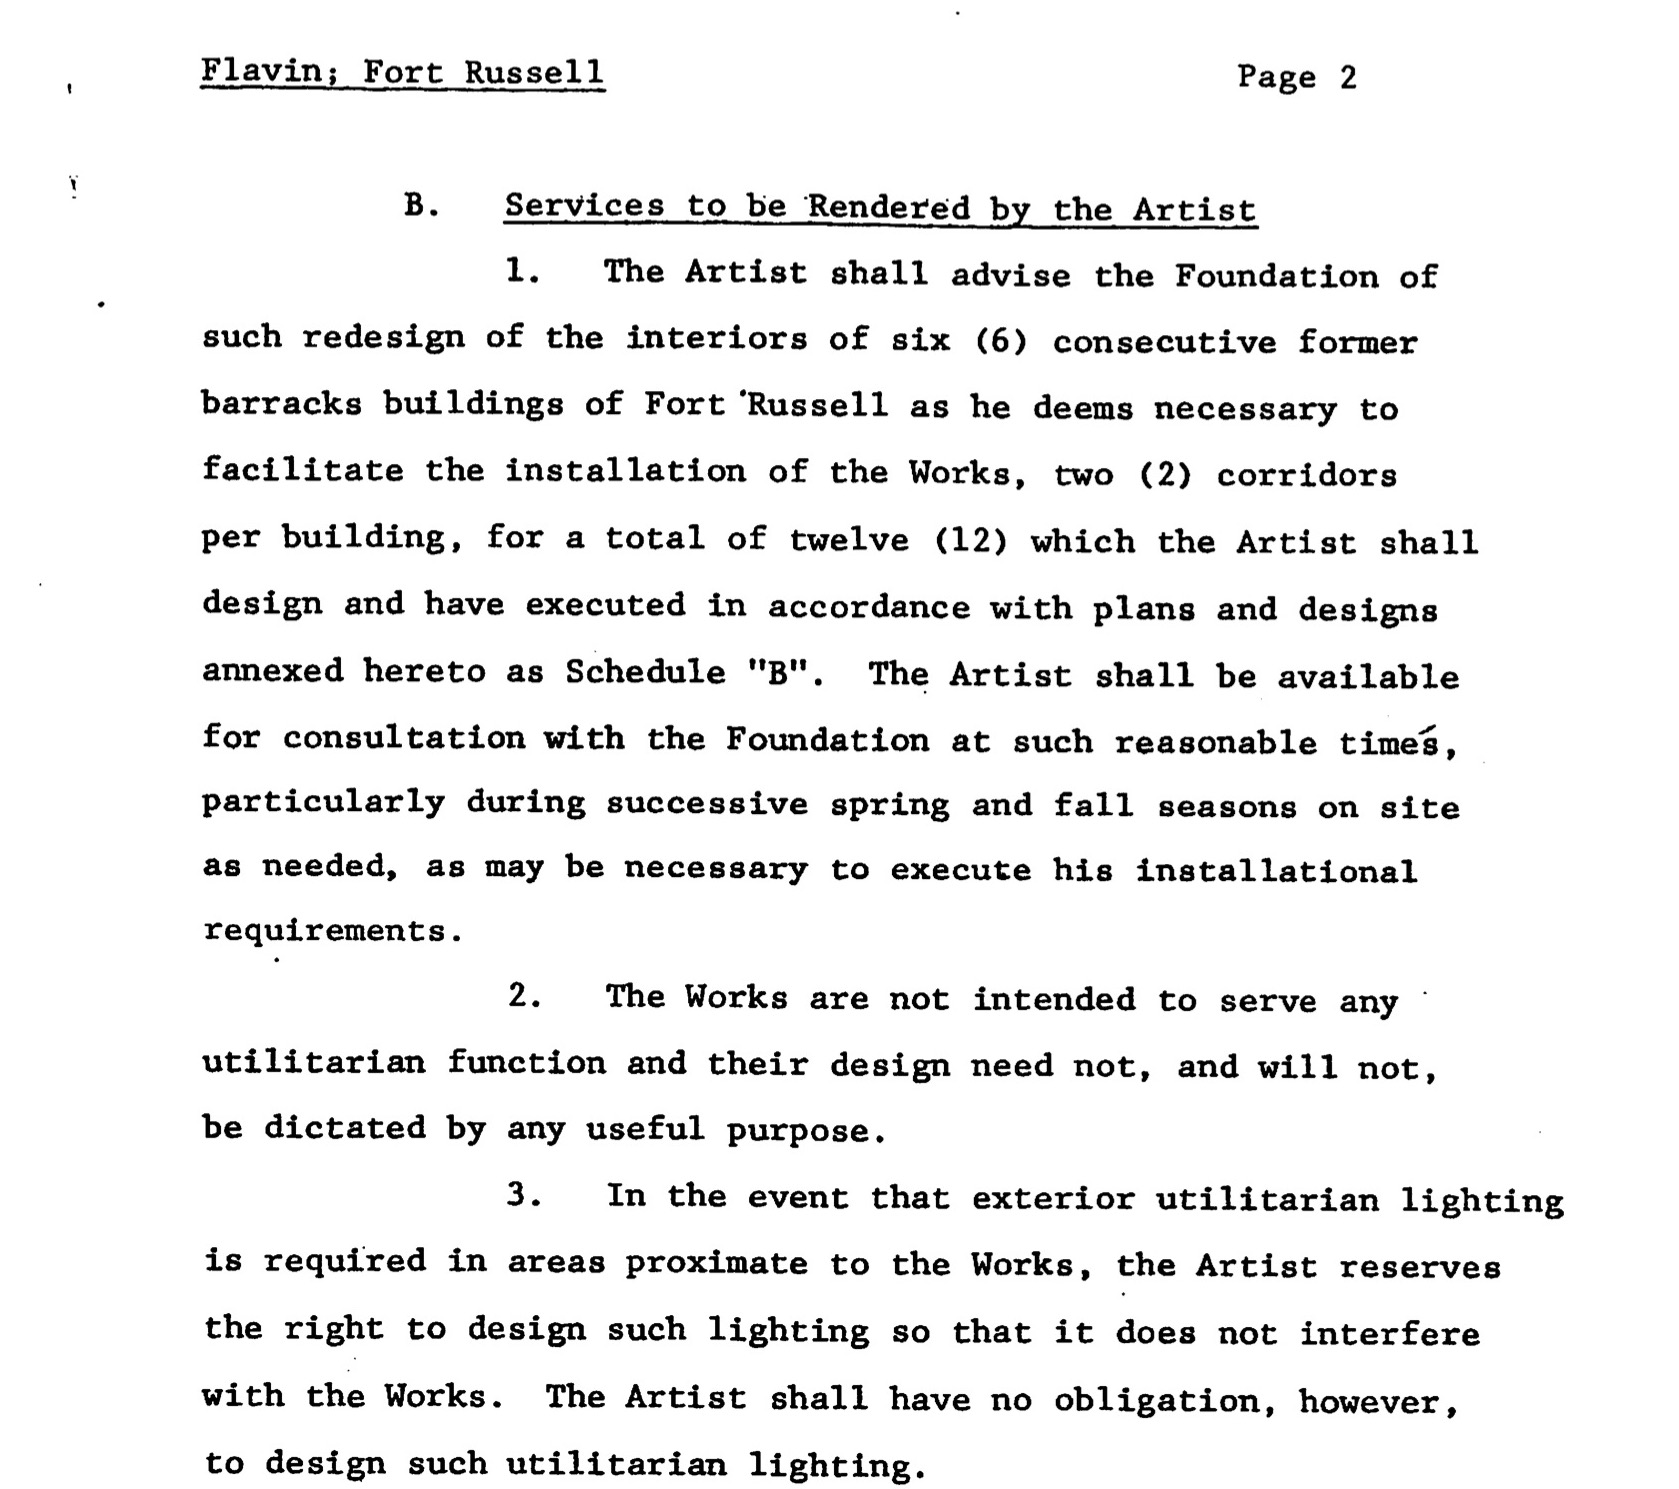 Page 2 of Dan Flavin's contract with Dia